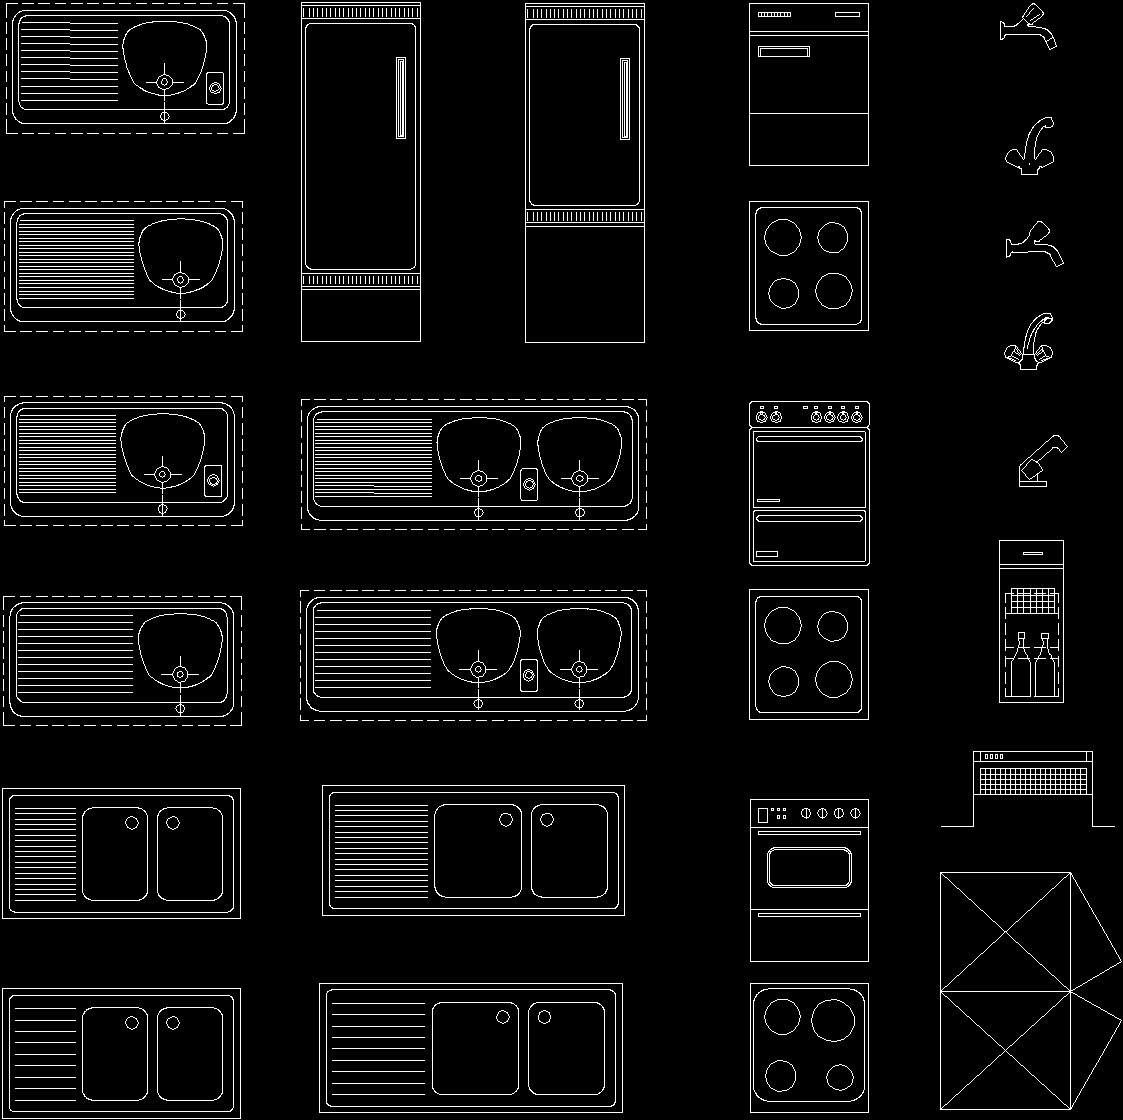 Restaurant Kitchen Layout Autocad: Kitchen Applications Blocks02 DWG Block For AutoCAD